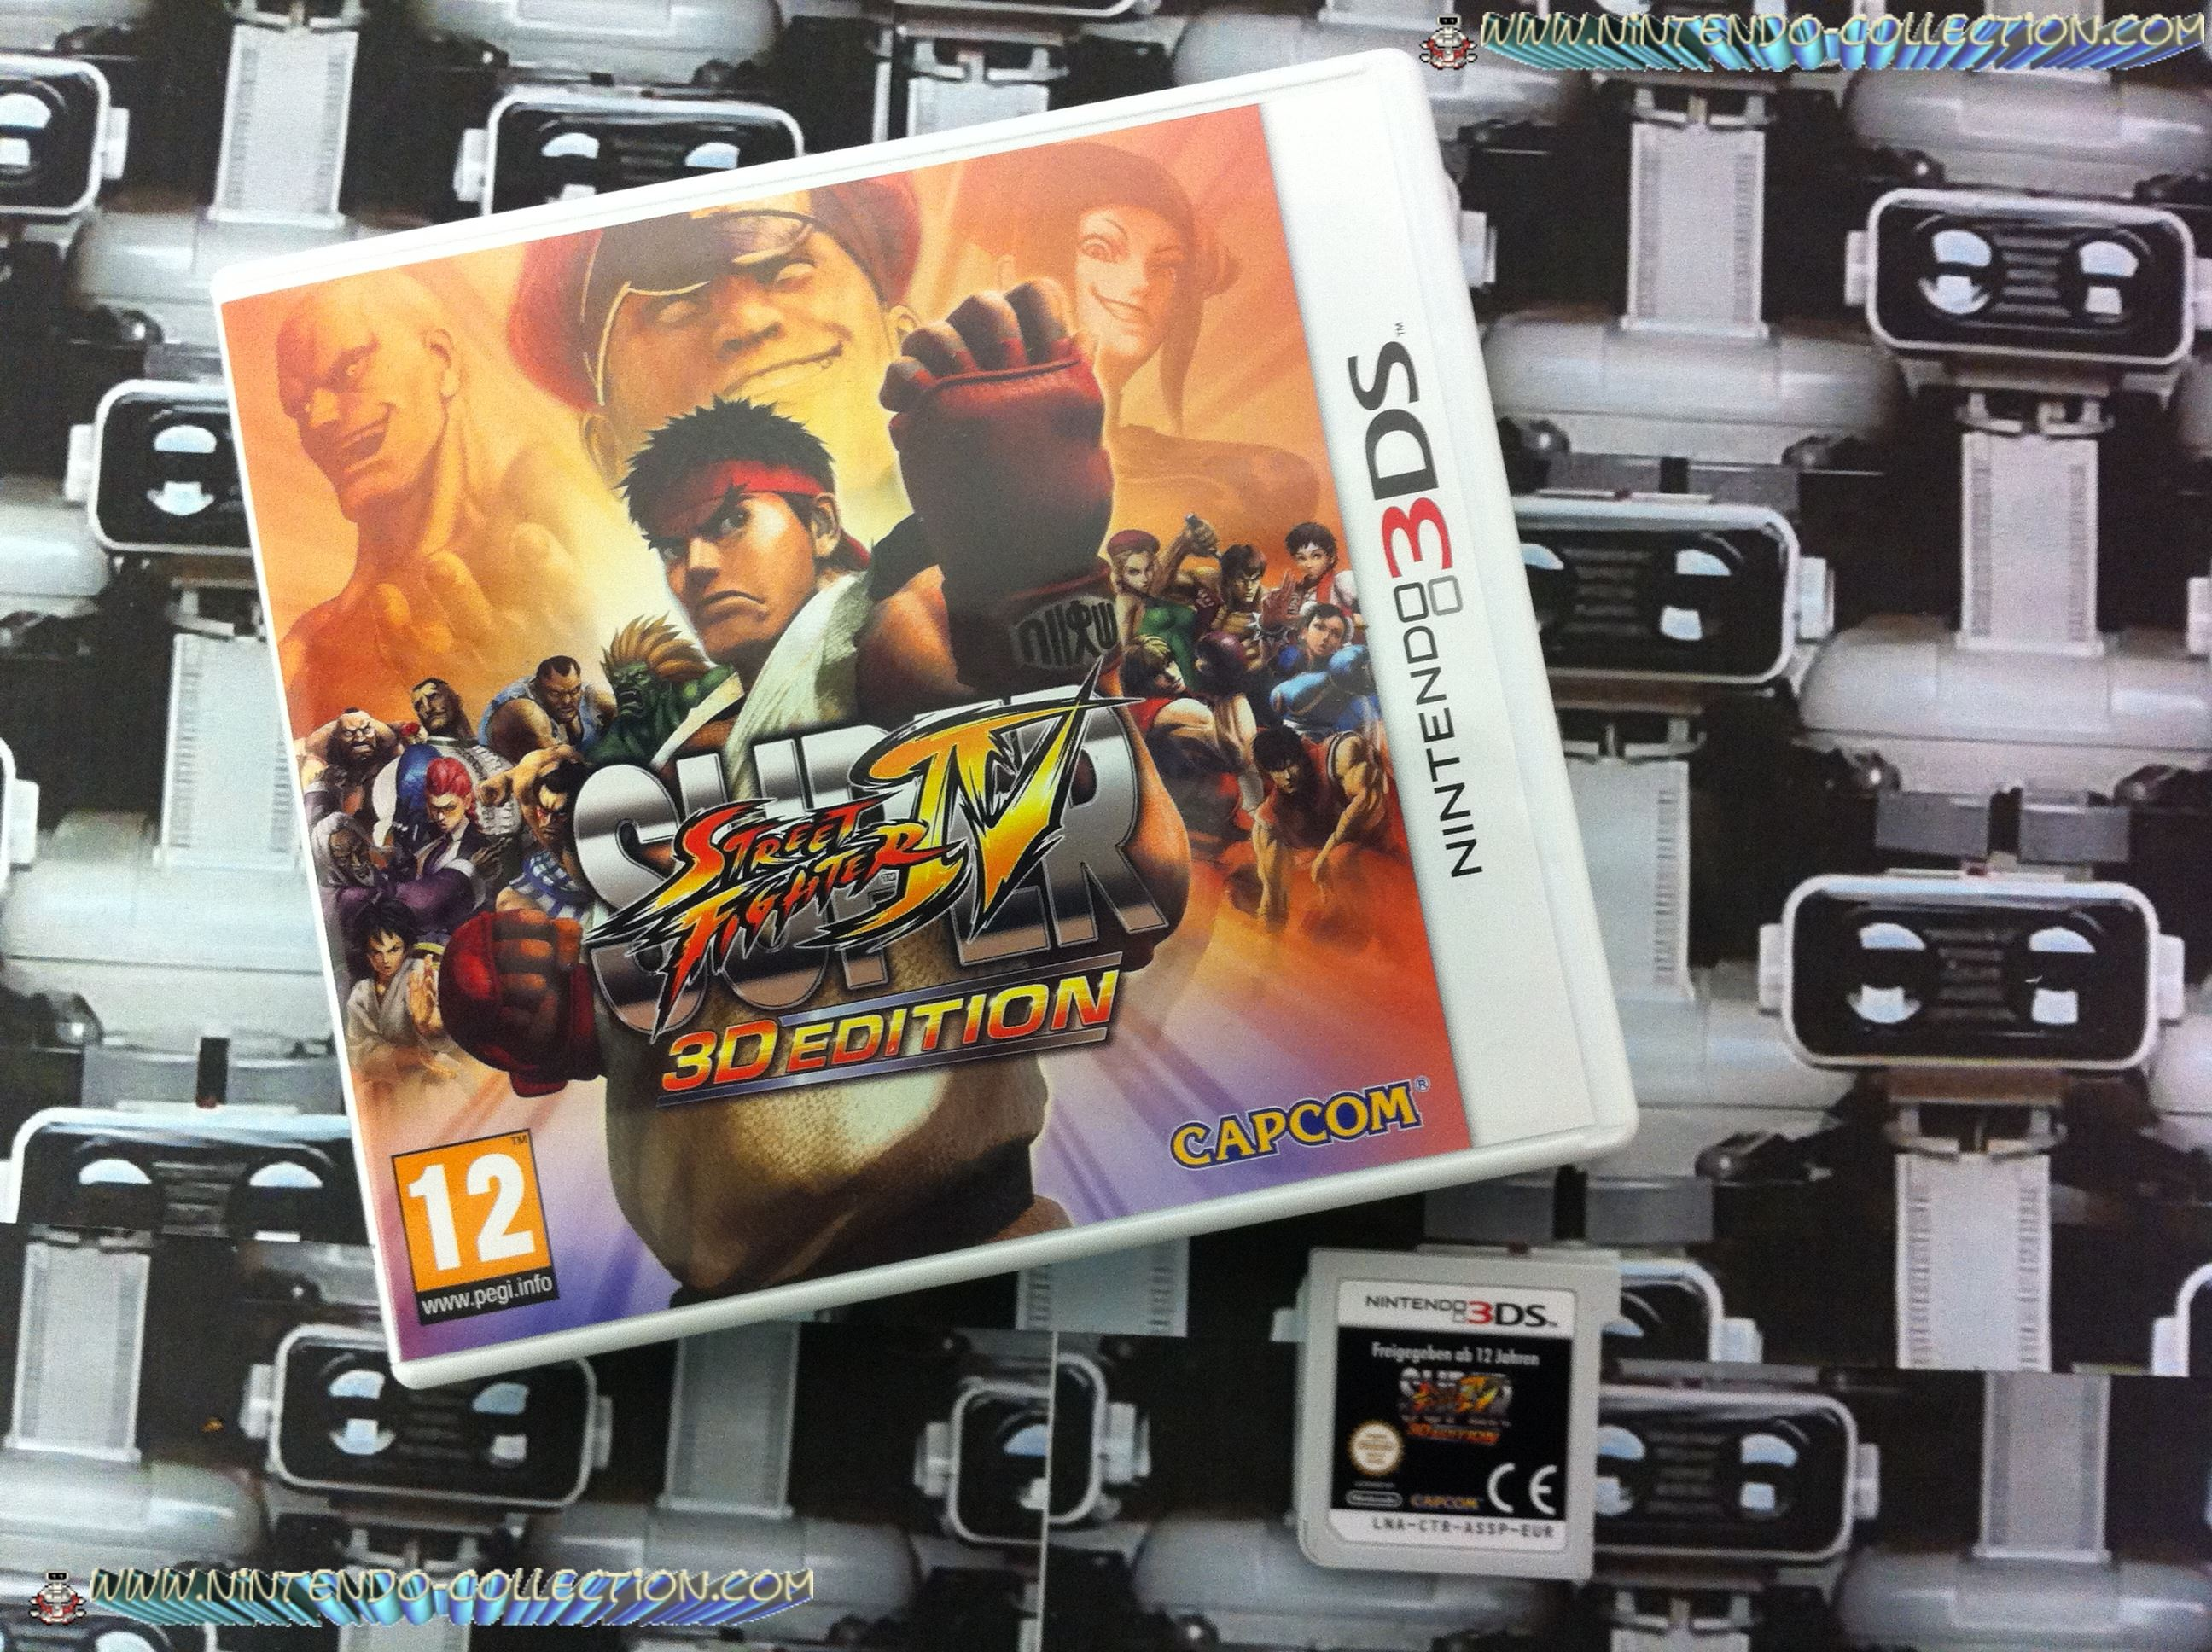 www.Nintendo-Collection.com - Mon Jeu Super Street Fighter IV 3D edition pour 3DS